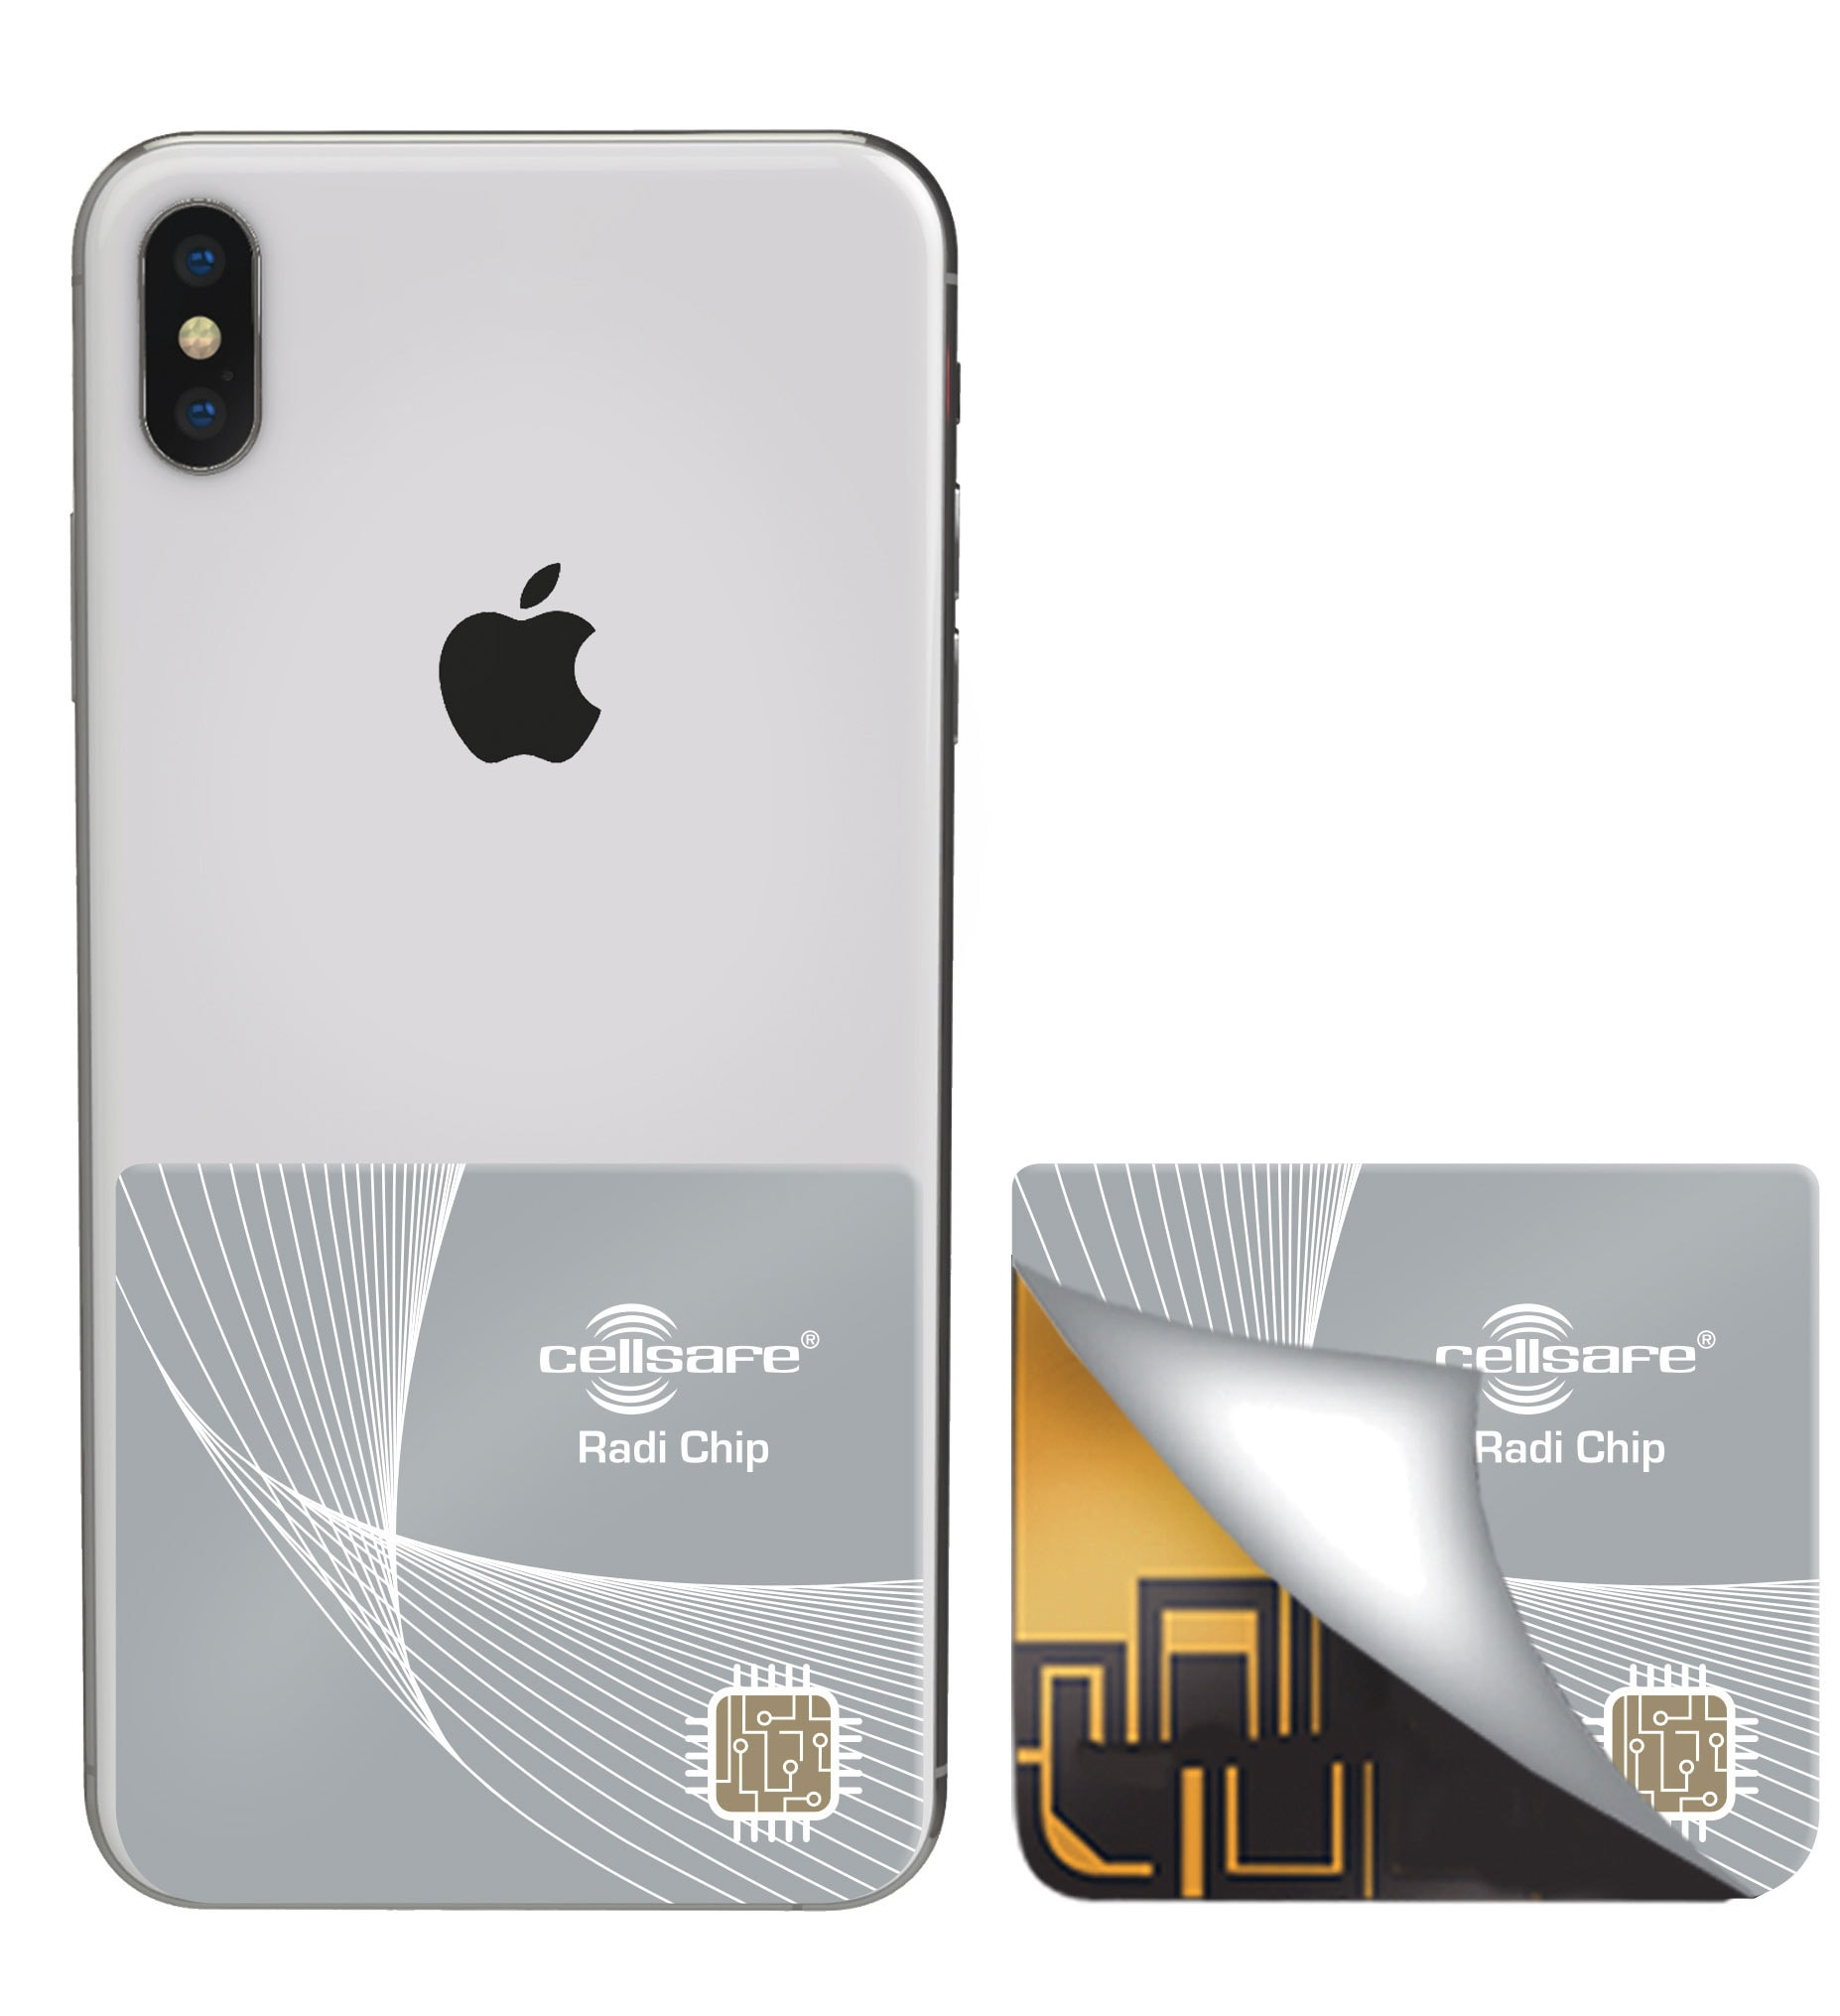 Mobile Phone Radiation Protection Cellsafe Radi-Chip for iPhone XS, XR &  iPhone XS Max  Reduces SAR by up to 98%*